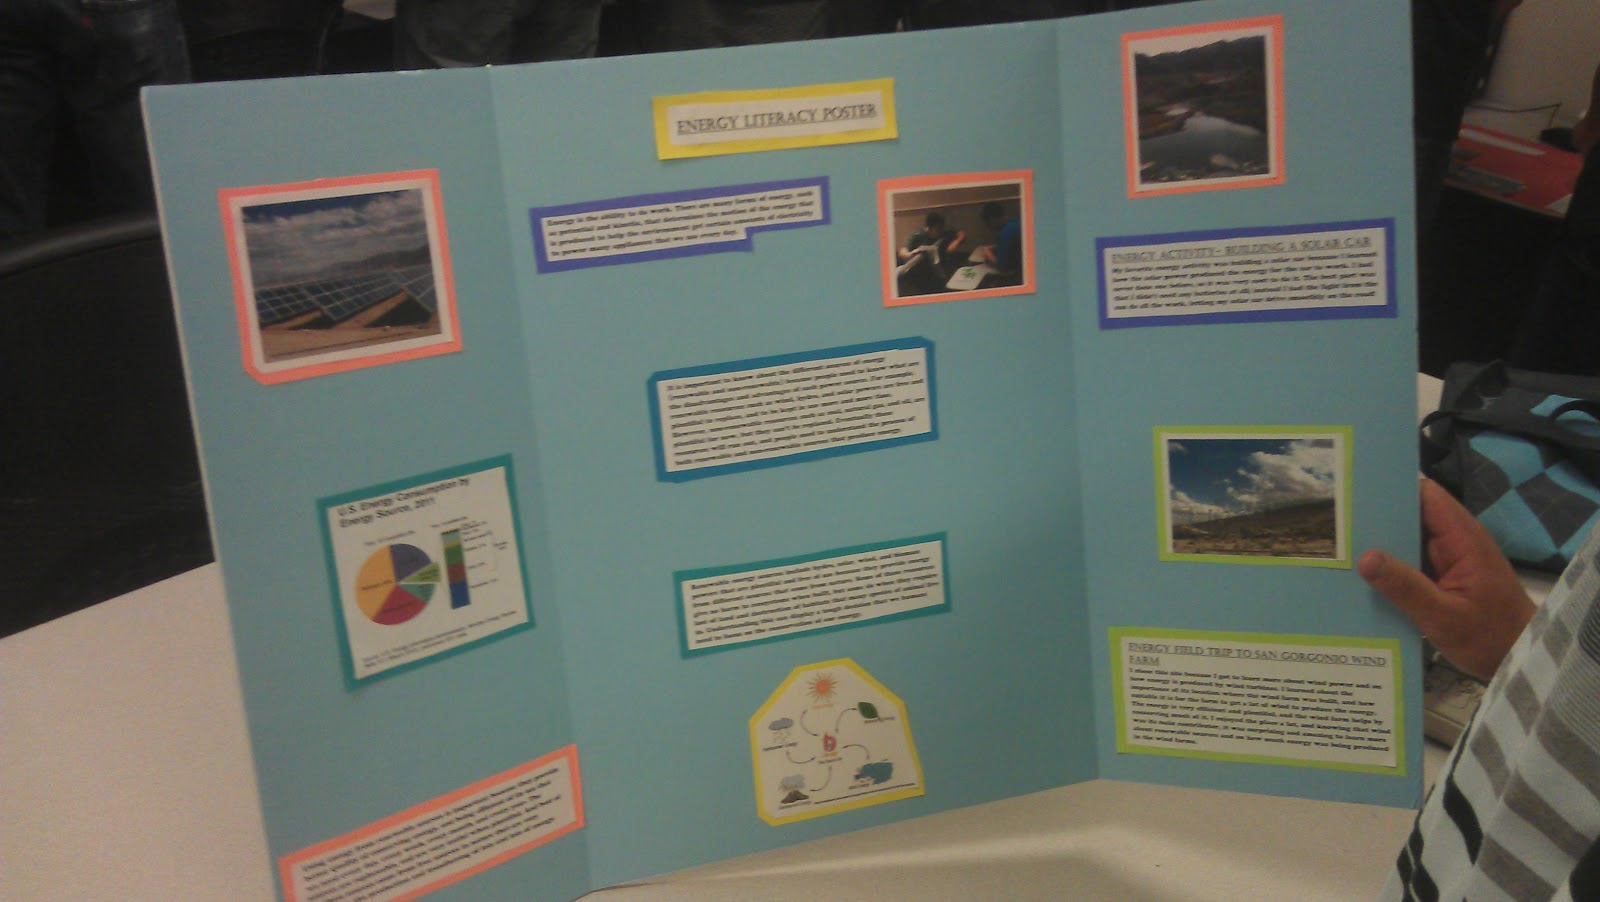 Energy Literacy Increasing Knowledge While Promoting